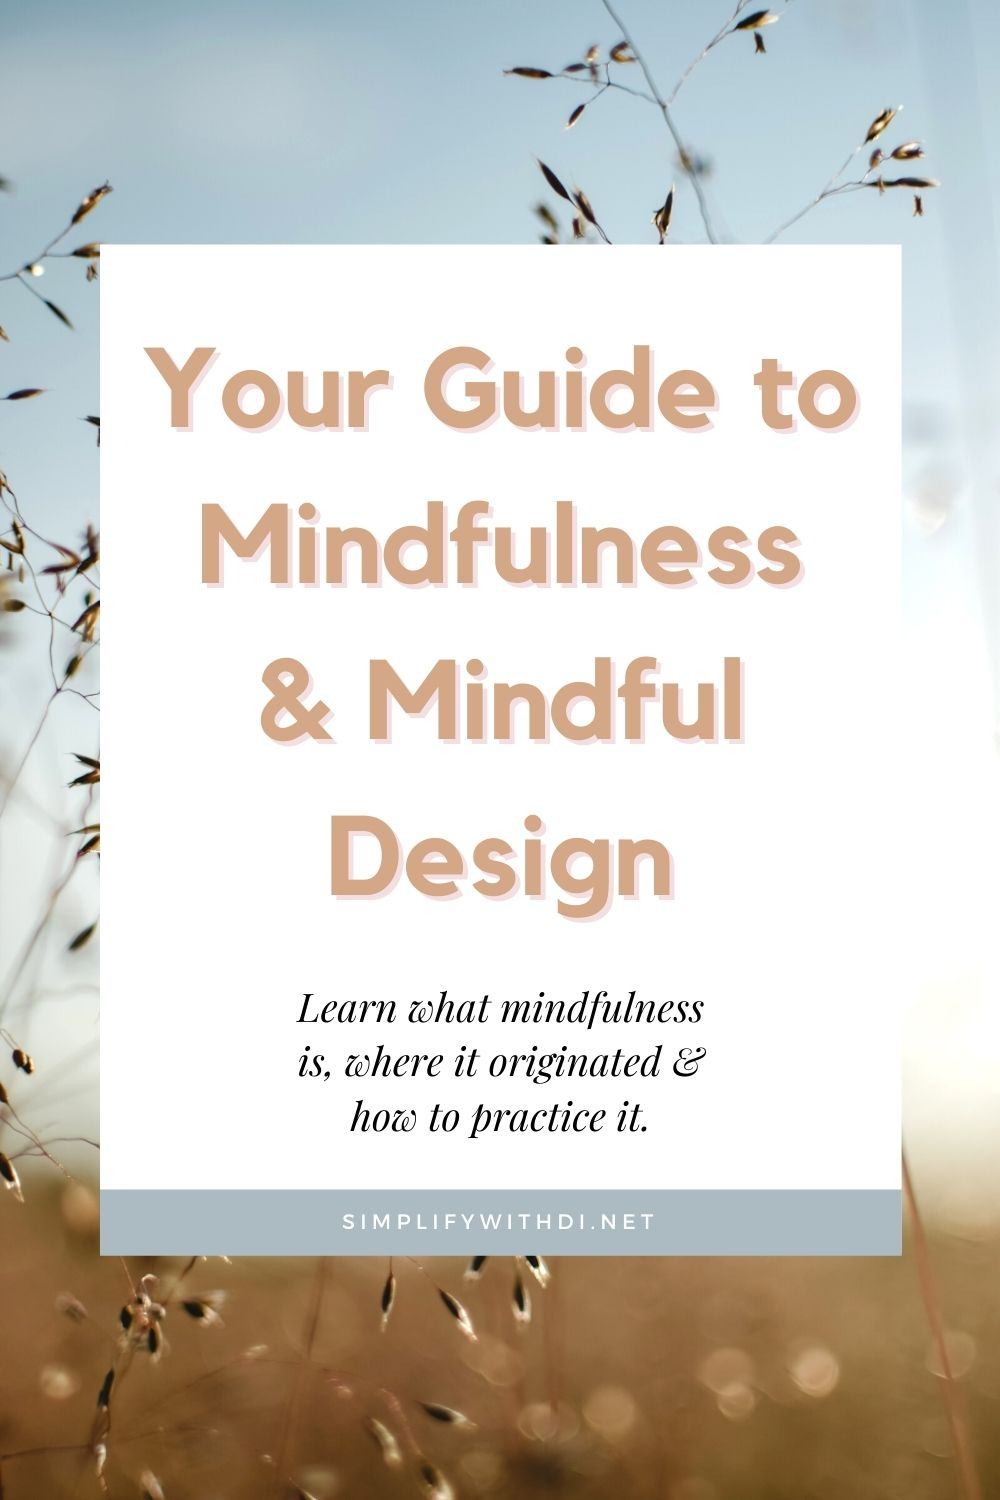 Your Guide to mindfulness and mindful design - learn what mindfulness is, where it originated, and how to practice it.